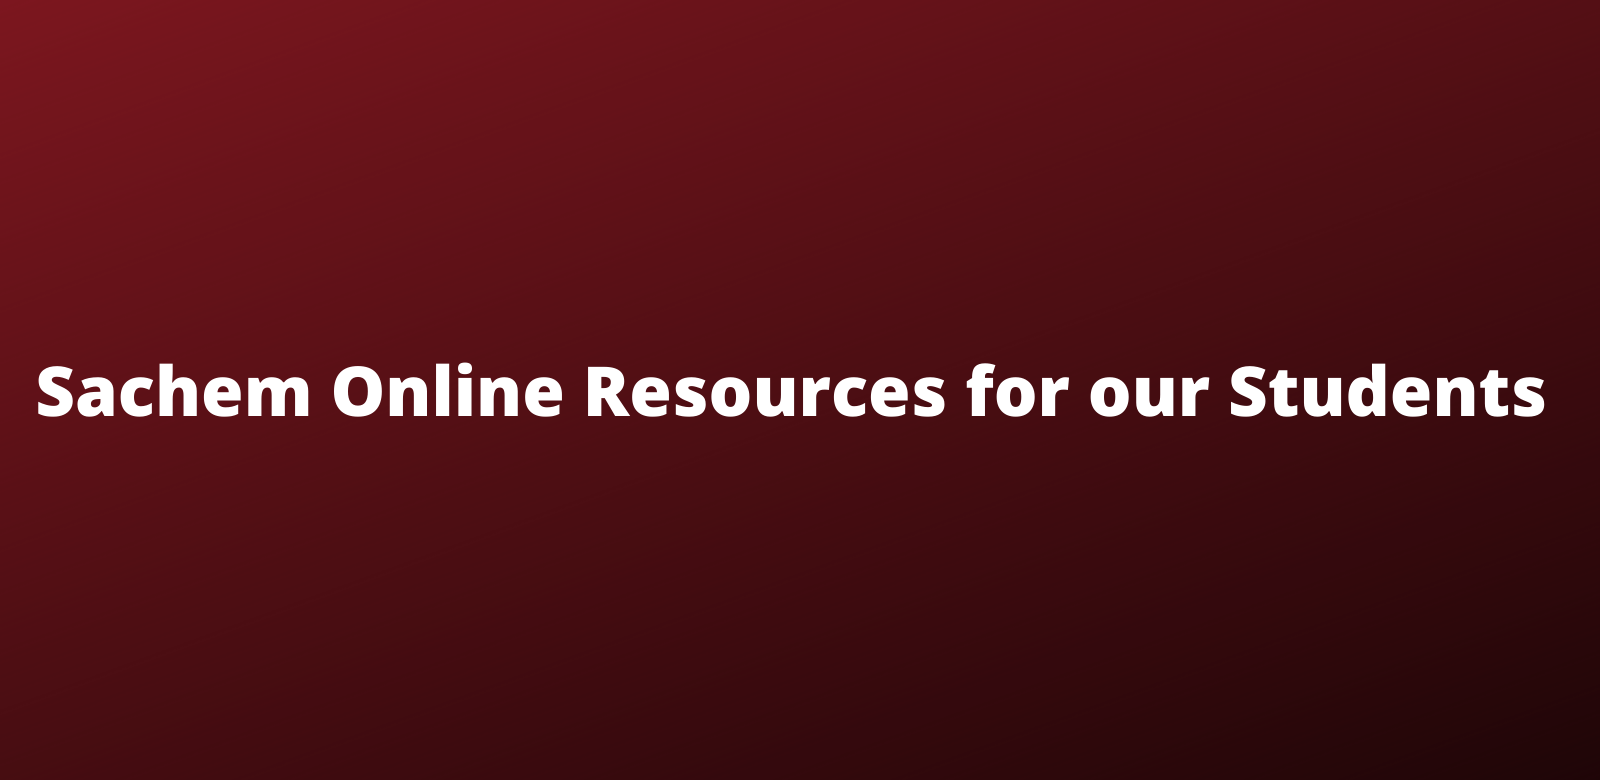 Sachem Online Resources for Students